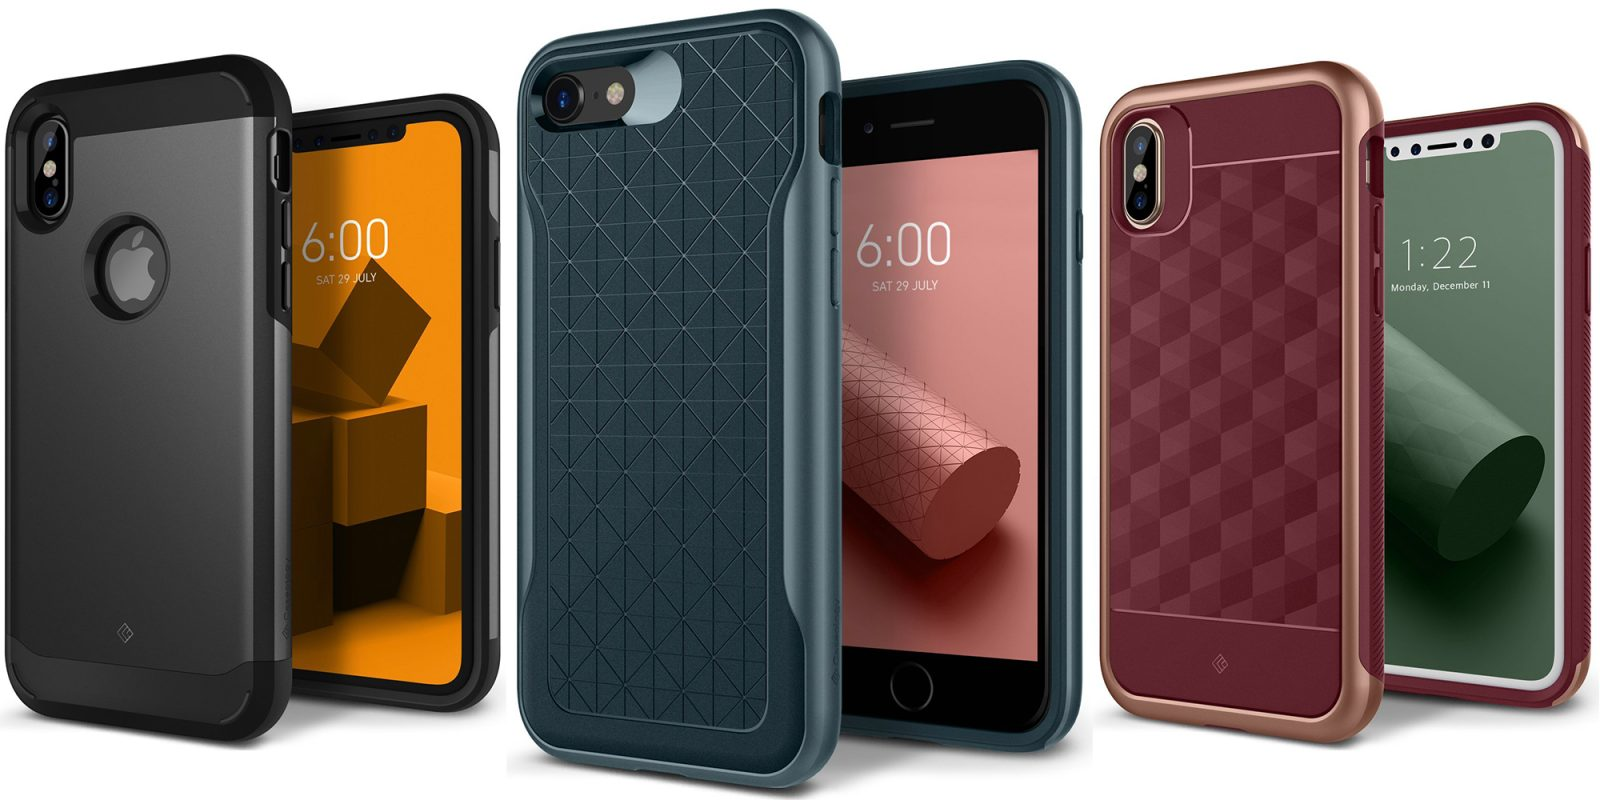 iphone 8 plus x cases from 5 at caseology 39 s amazon storefront 9to5toys. Black Bedroom Furniture Sets. Home Design Ideas